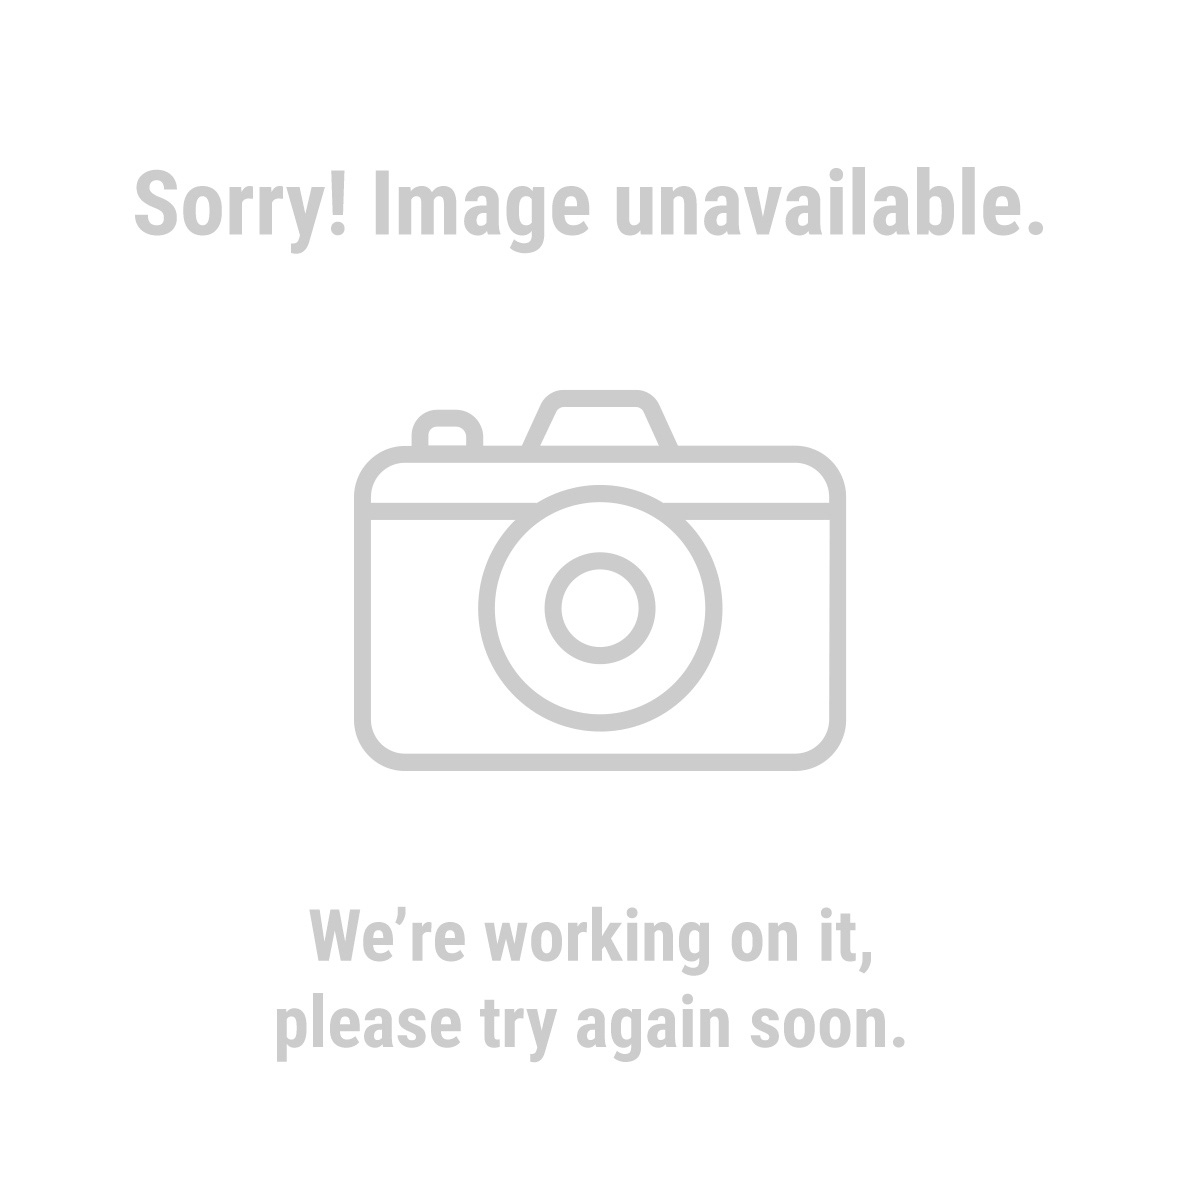 40403 3 Piece Cleaning Brush Set